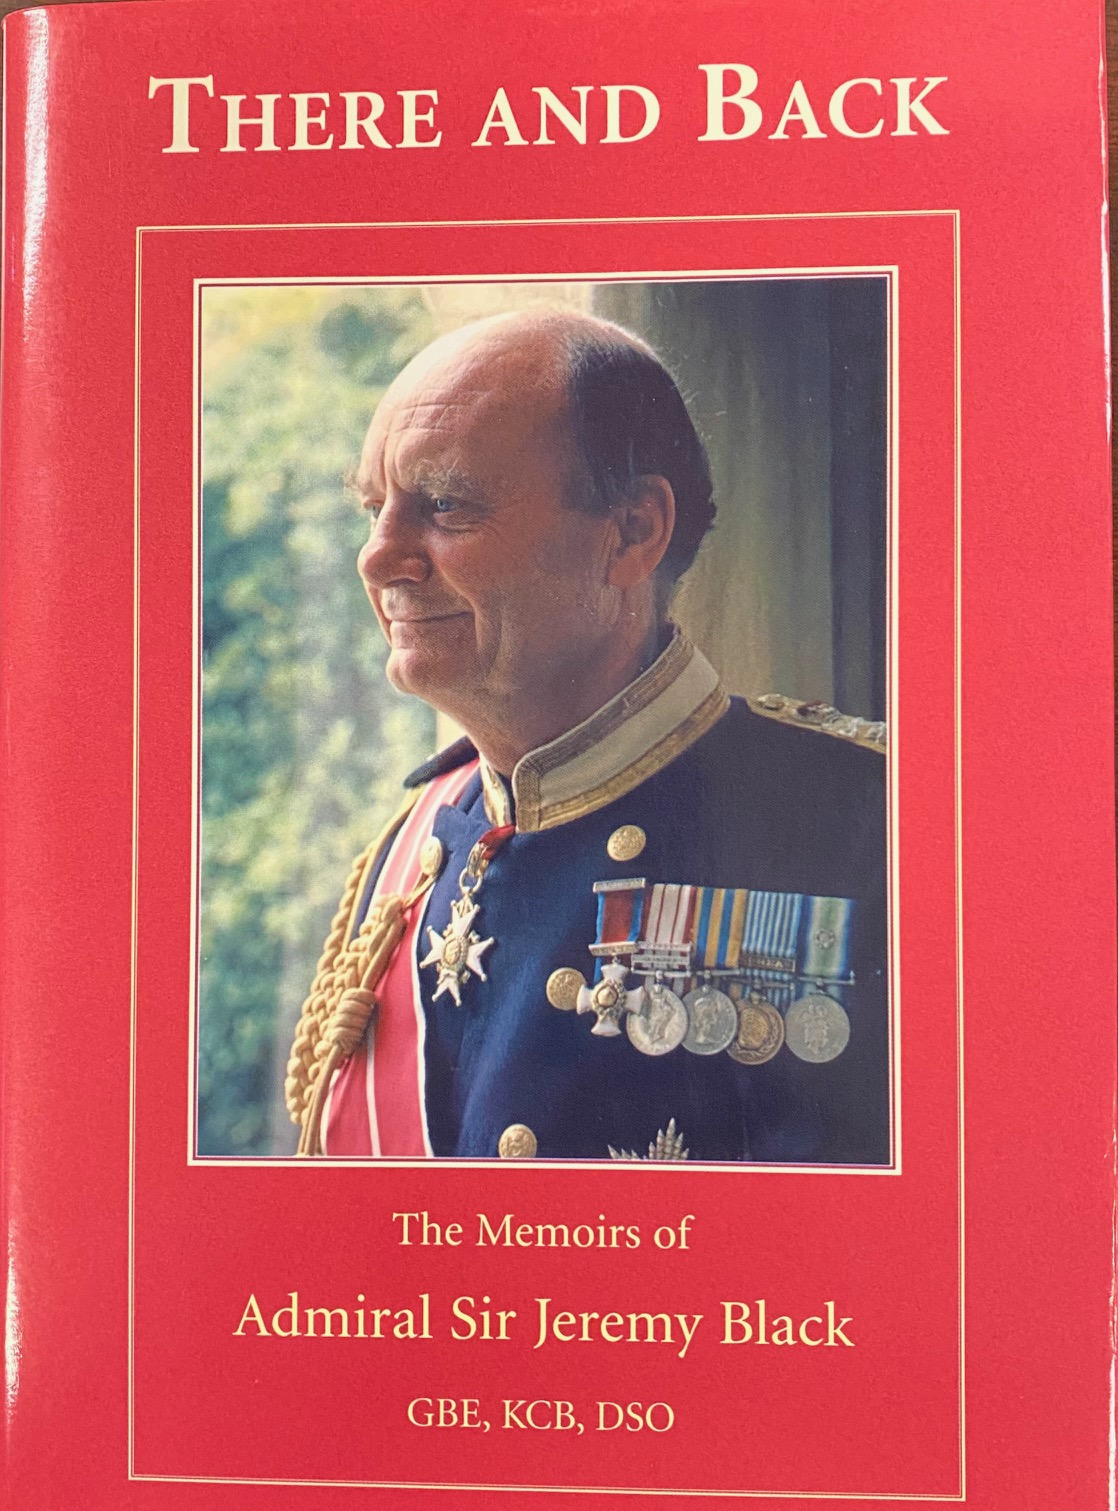 Image for There and back: the memoirs of Admiral Sir Jeremy Black, GBE, KCB, DSO